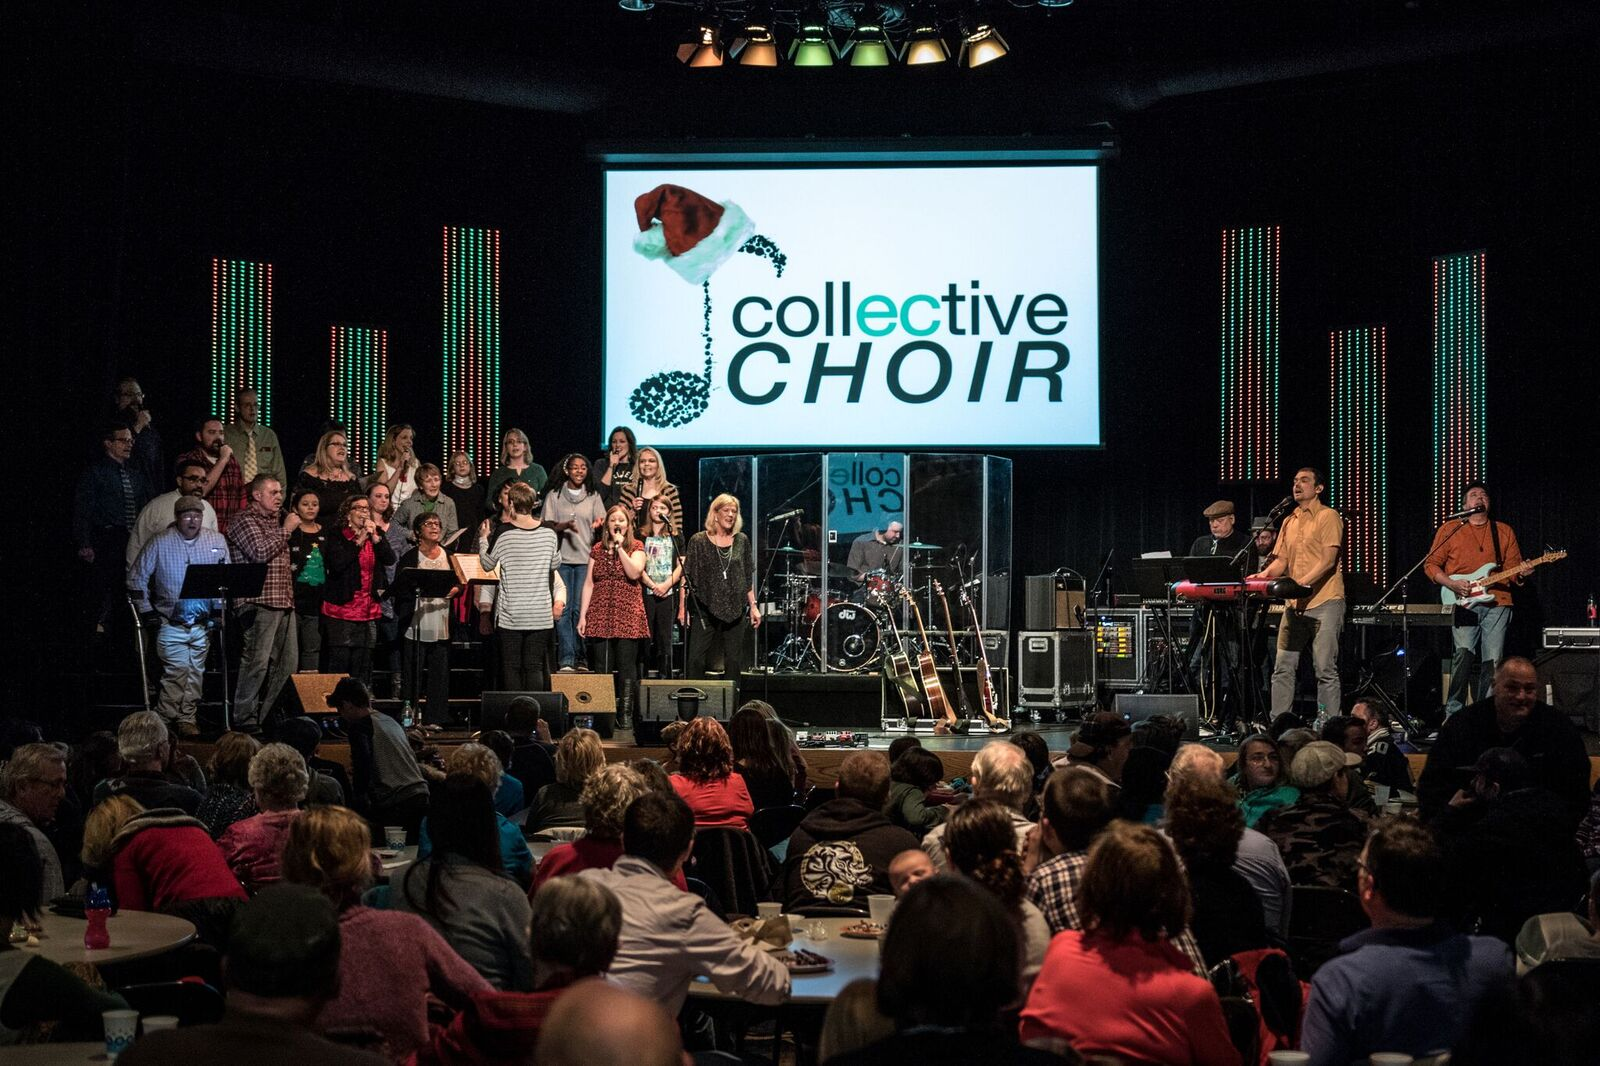 The Collective Choir performs at the 'GO' Concert at Peace Church in Eau Claire Wi 2018.